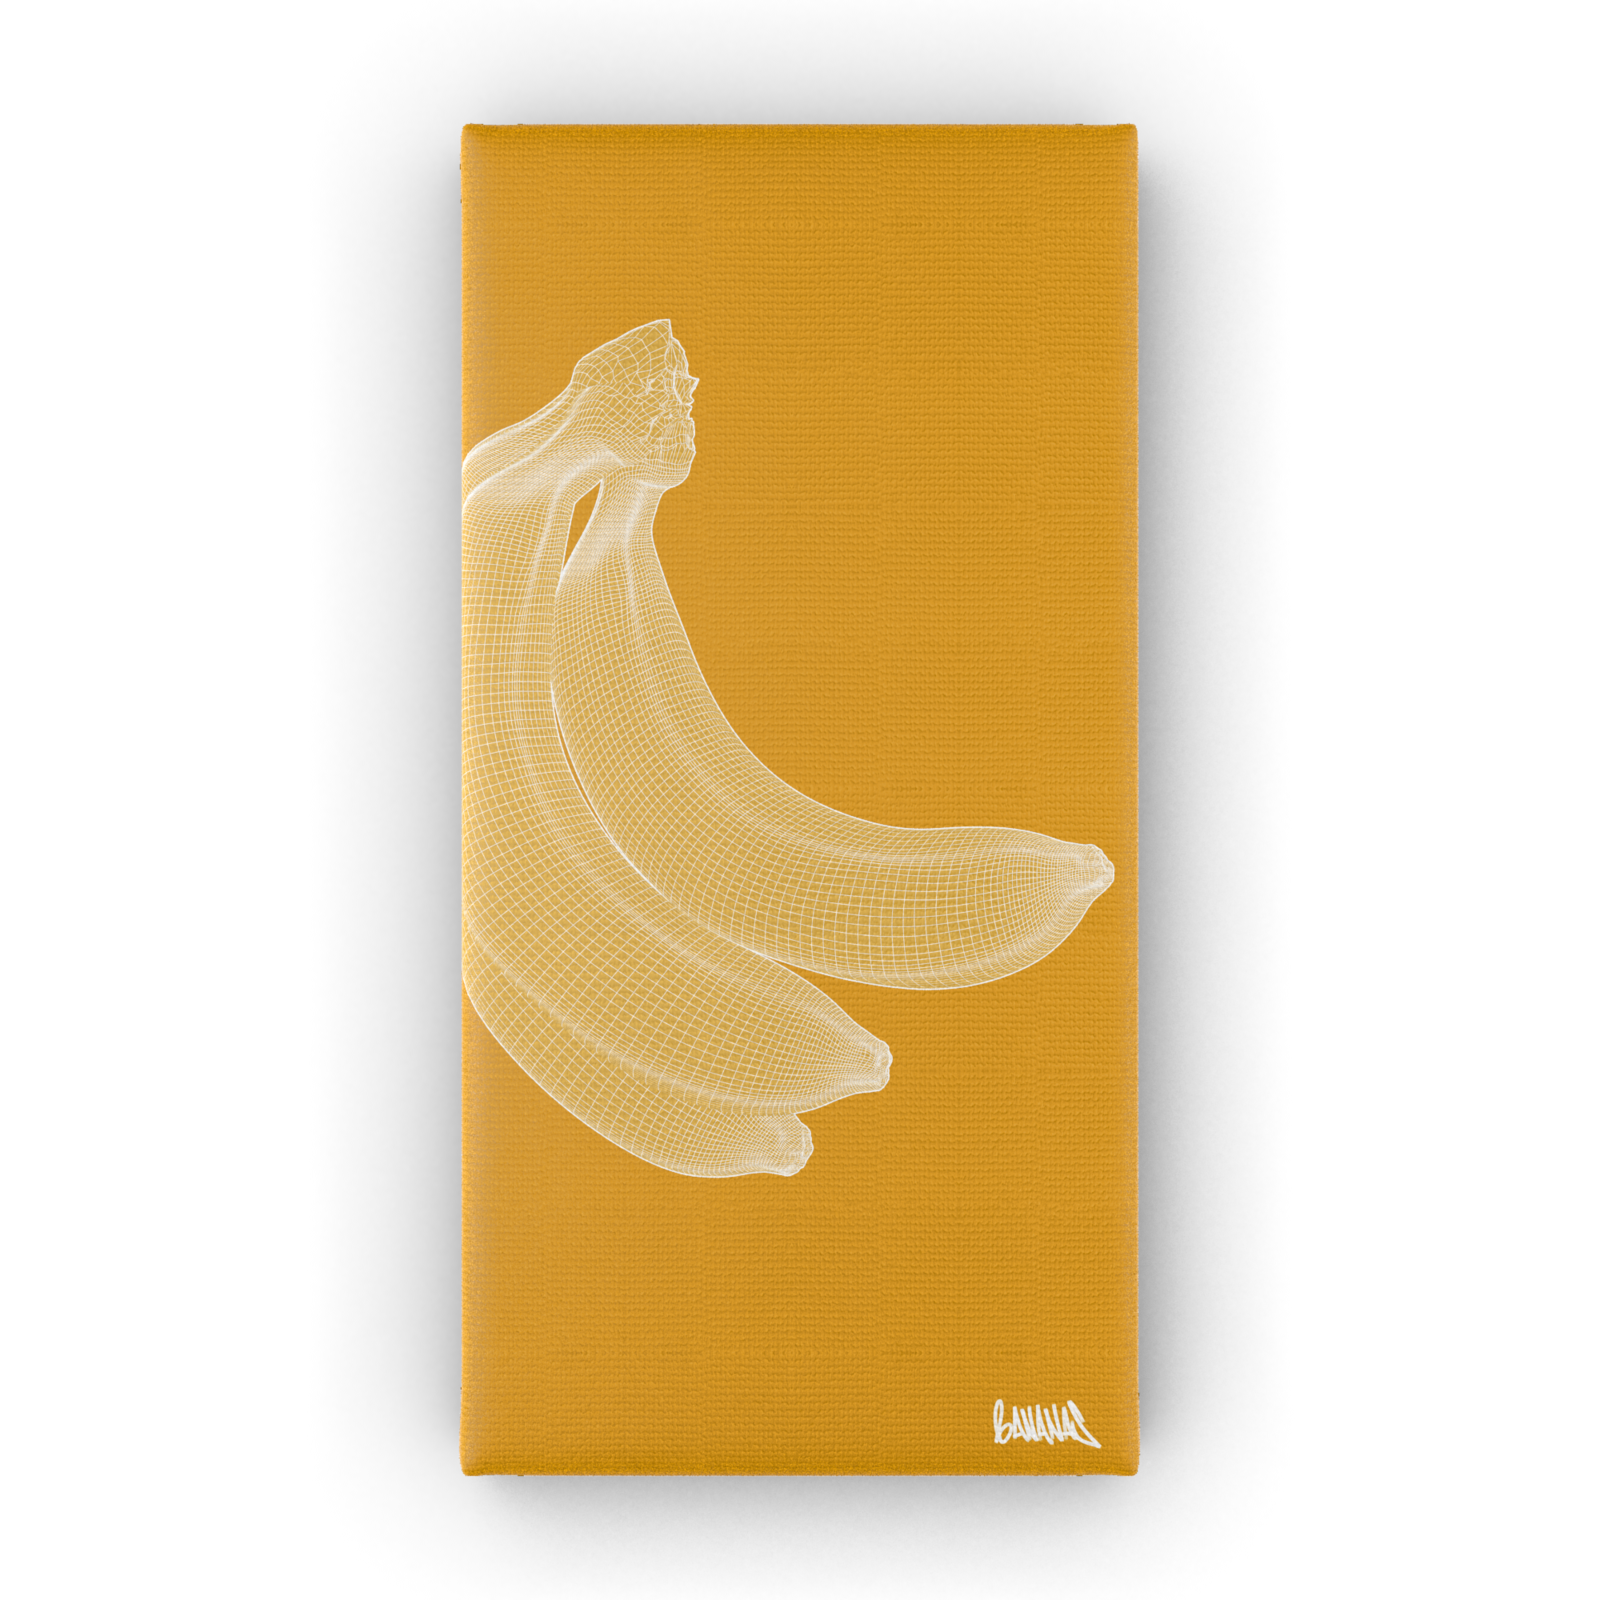 Fruits_BANANA_OnTrans_0002.png